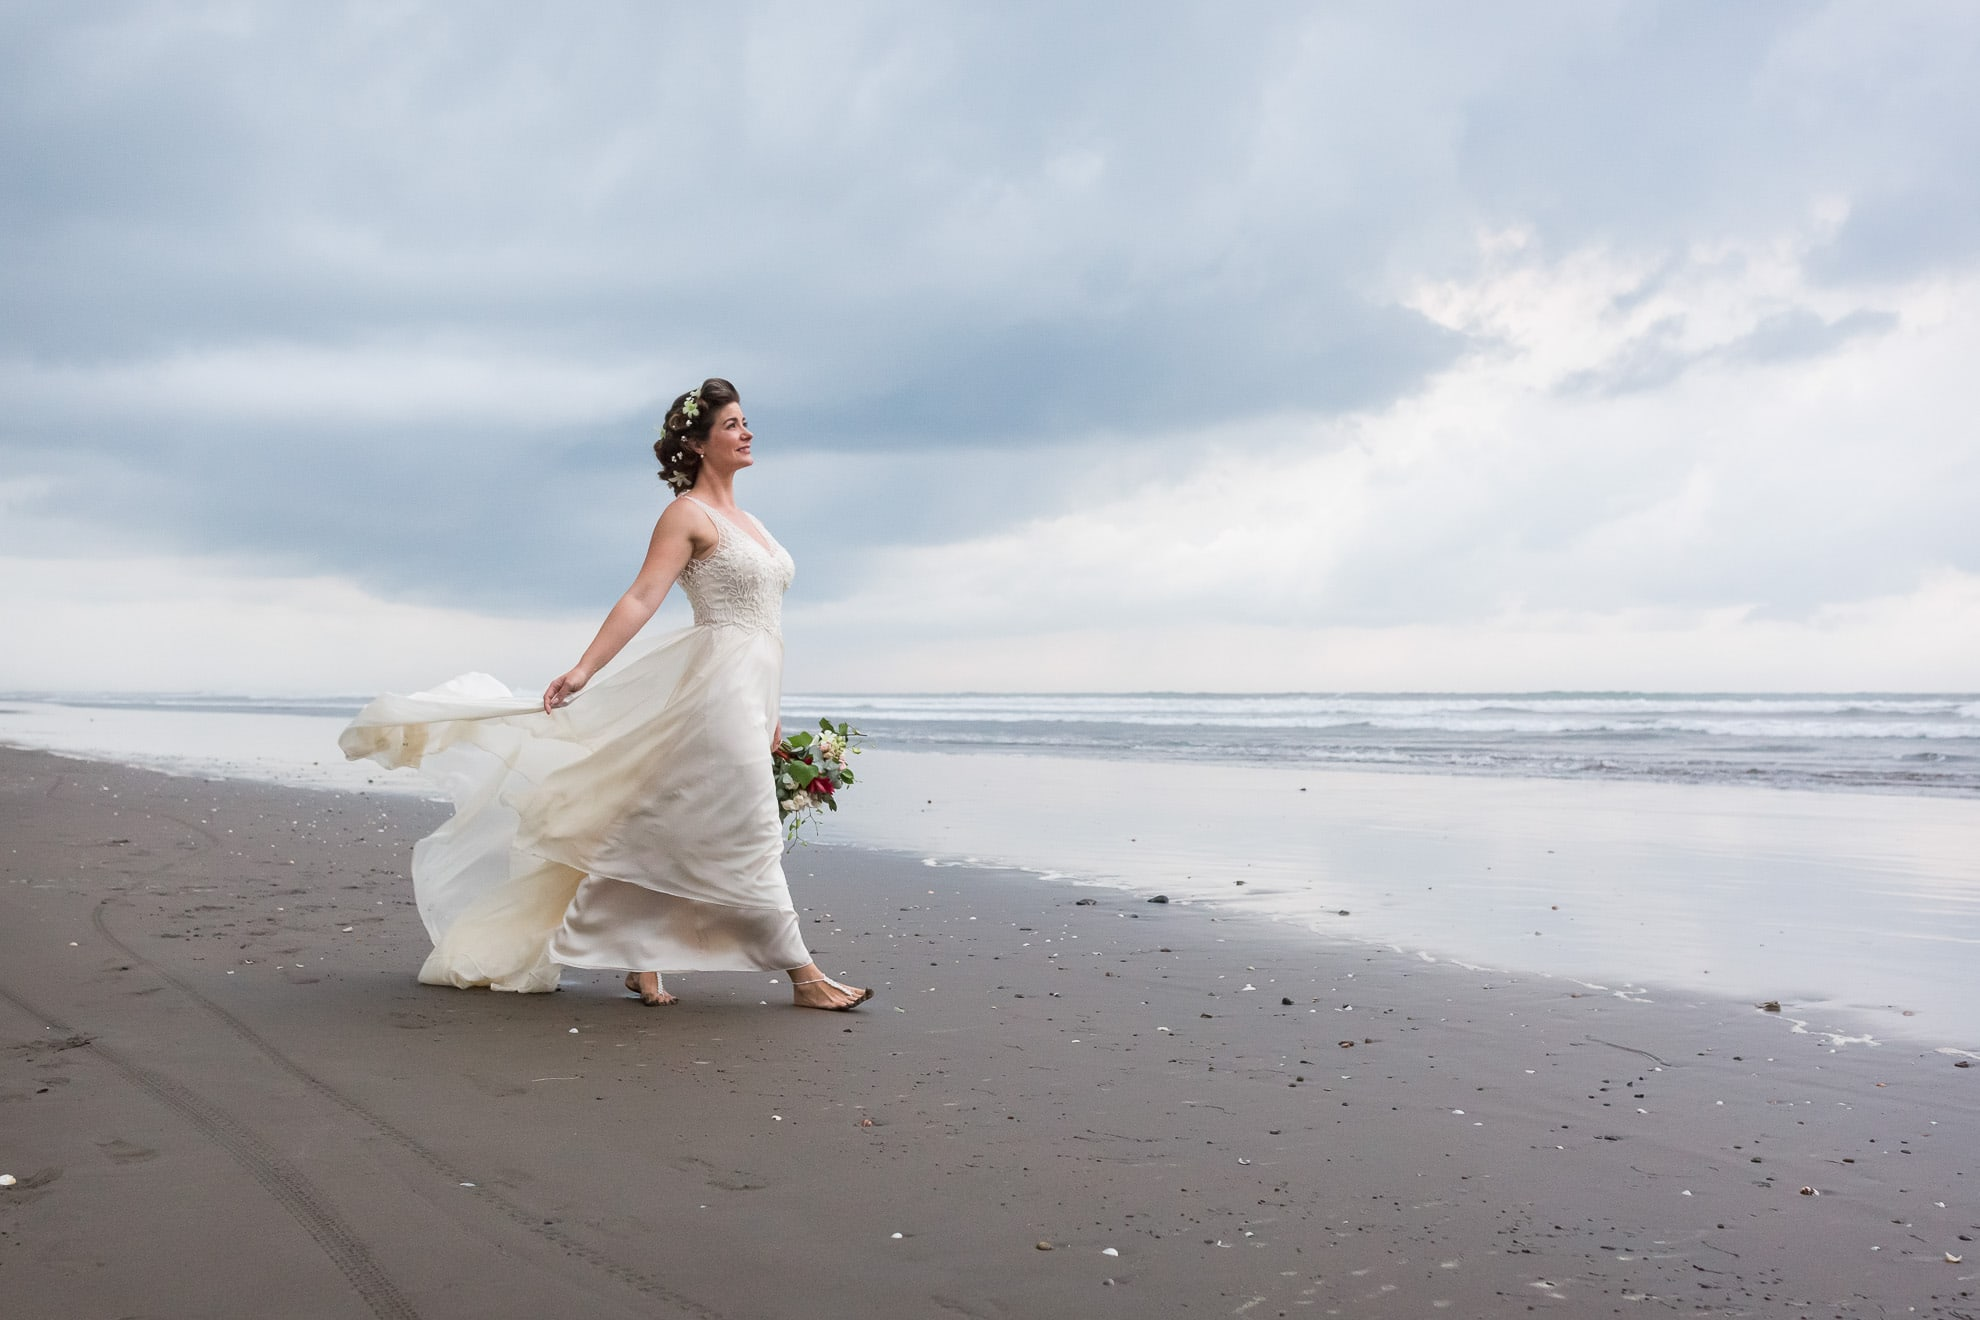 Bridal portraits on one of the best Jaco beaches in Costa Rica!